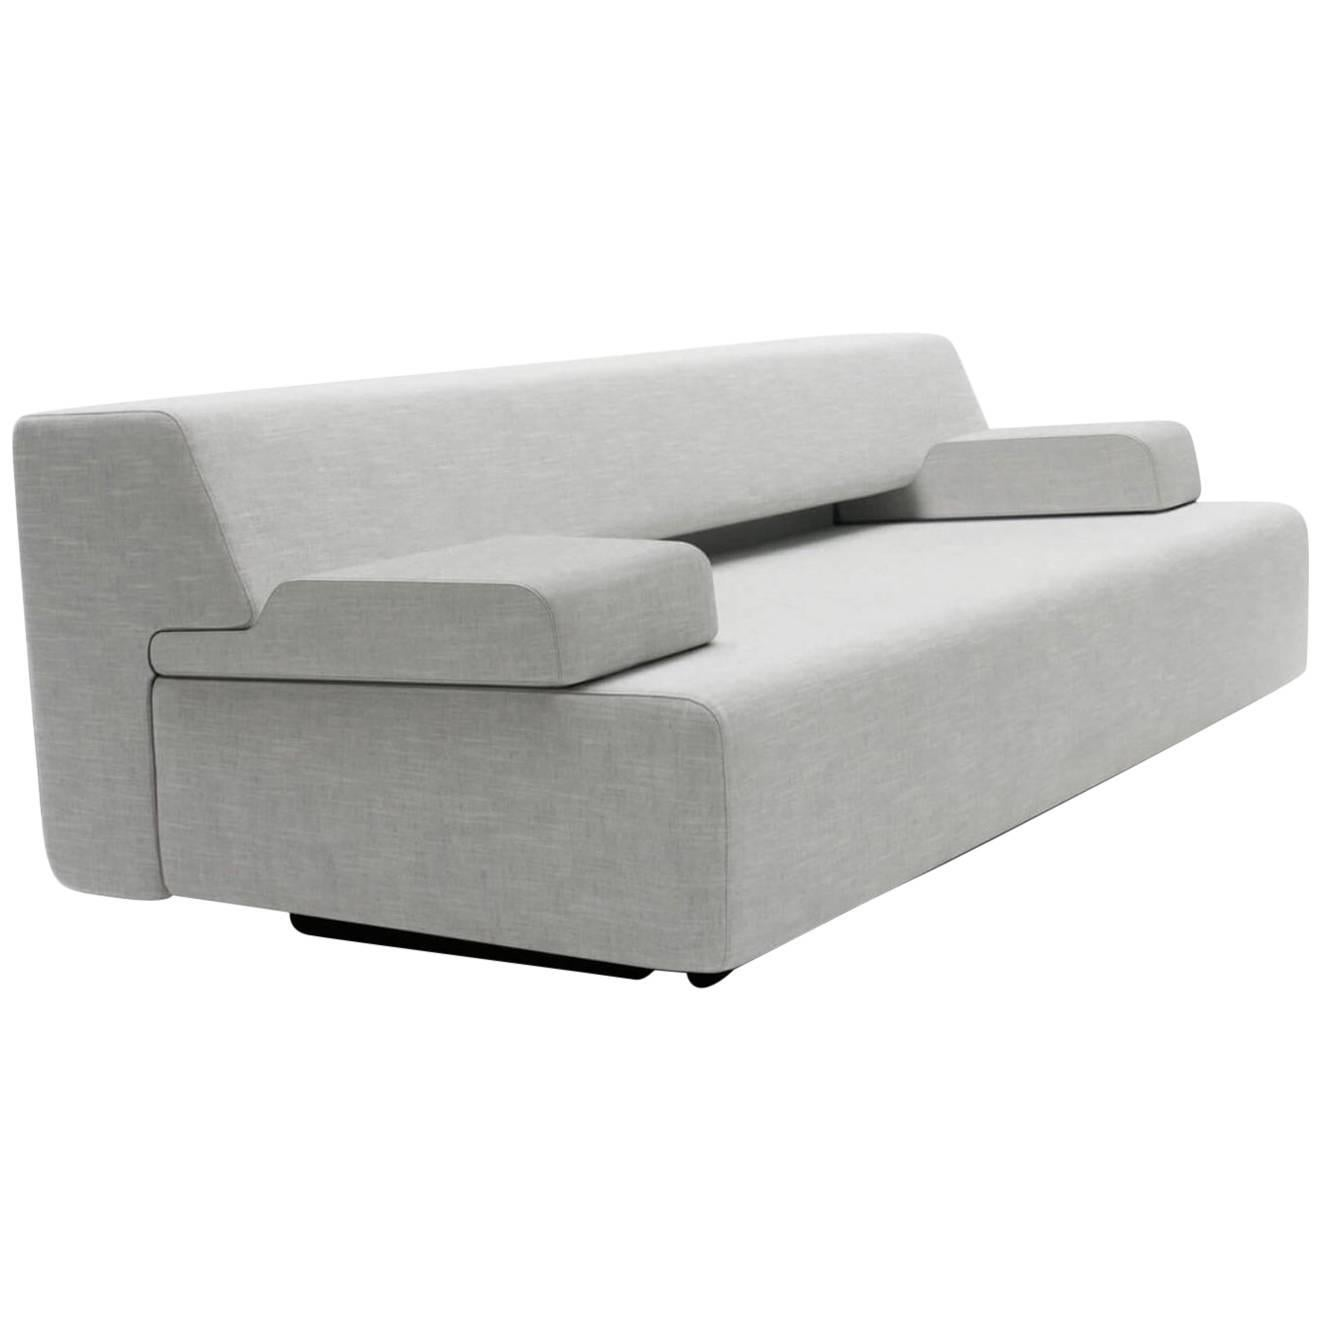 COR Cosma Sleeper Sofa In Fabric Or Leather For Sale